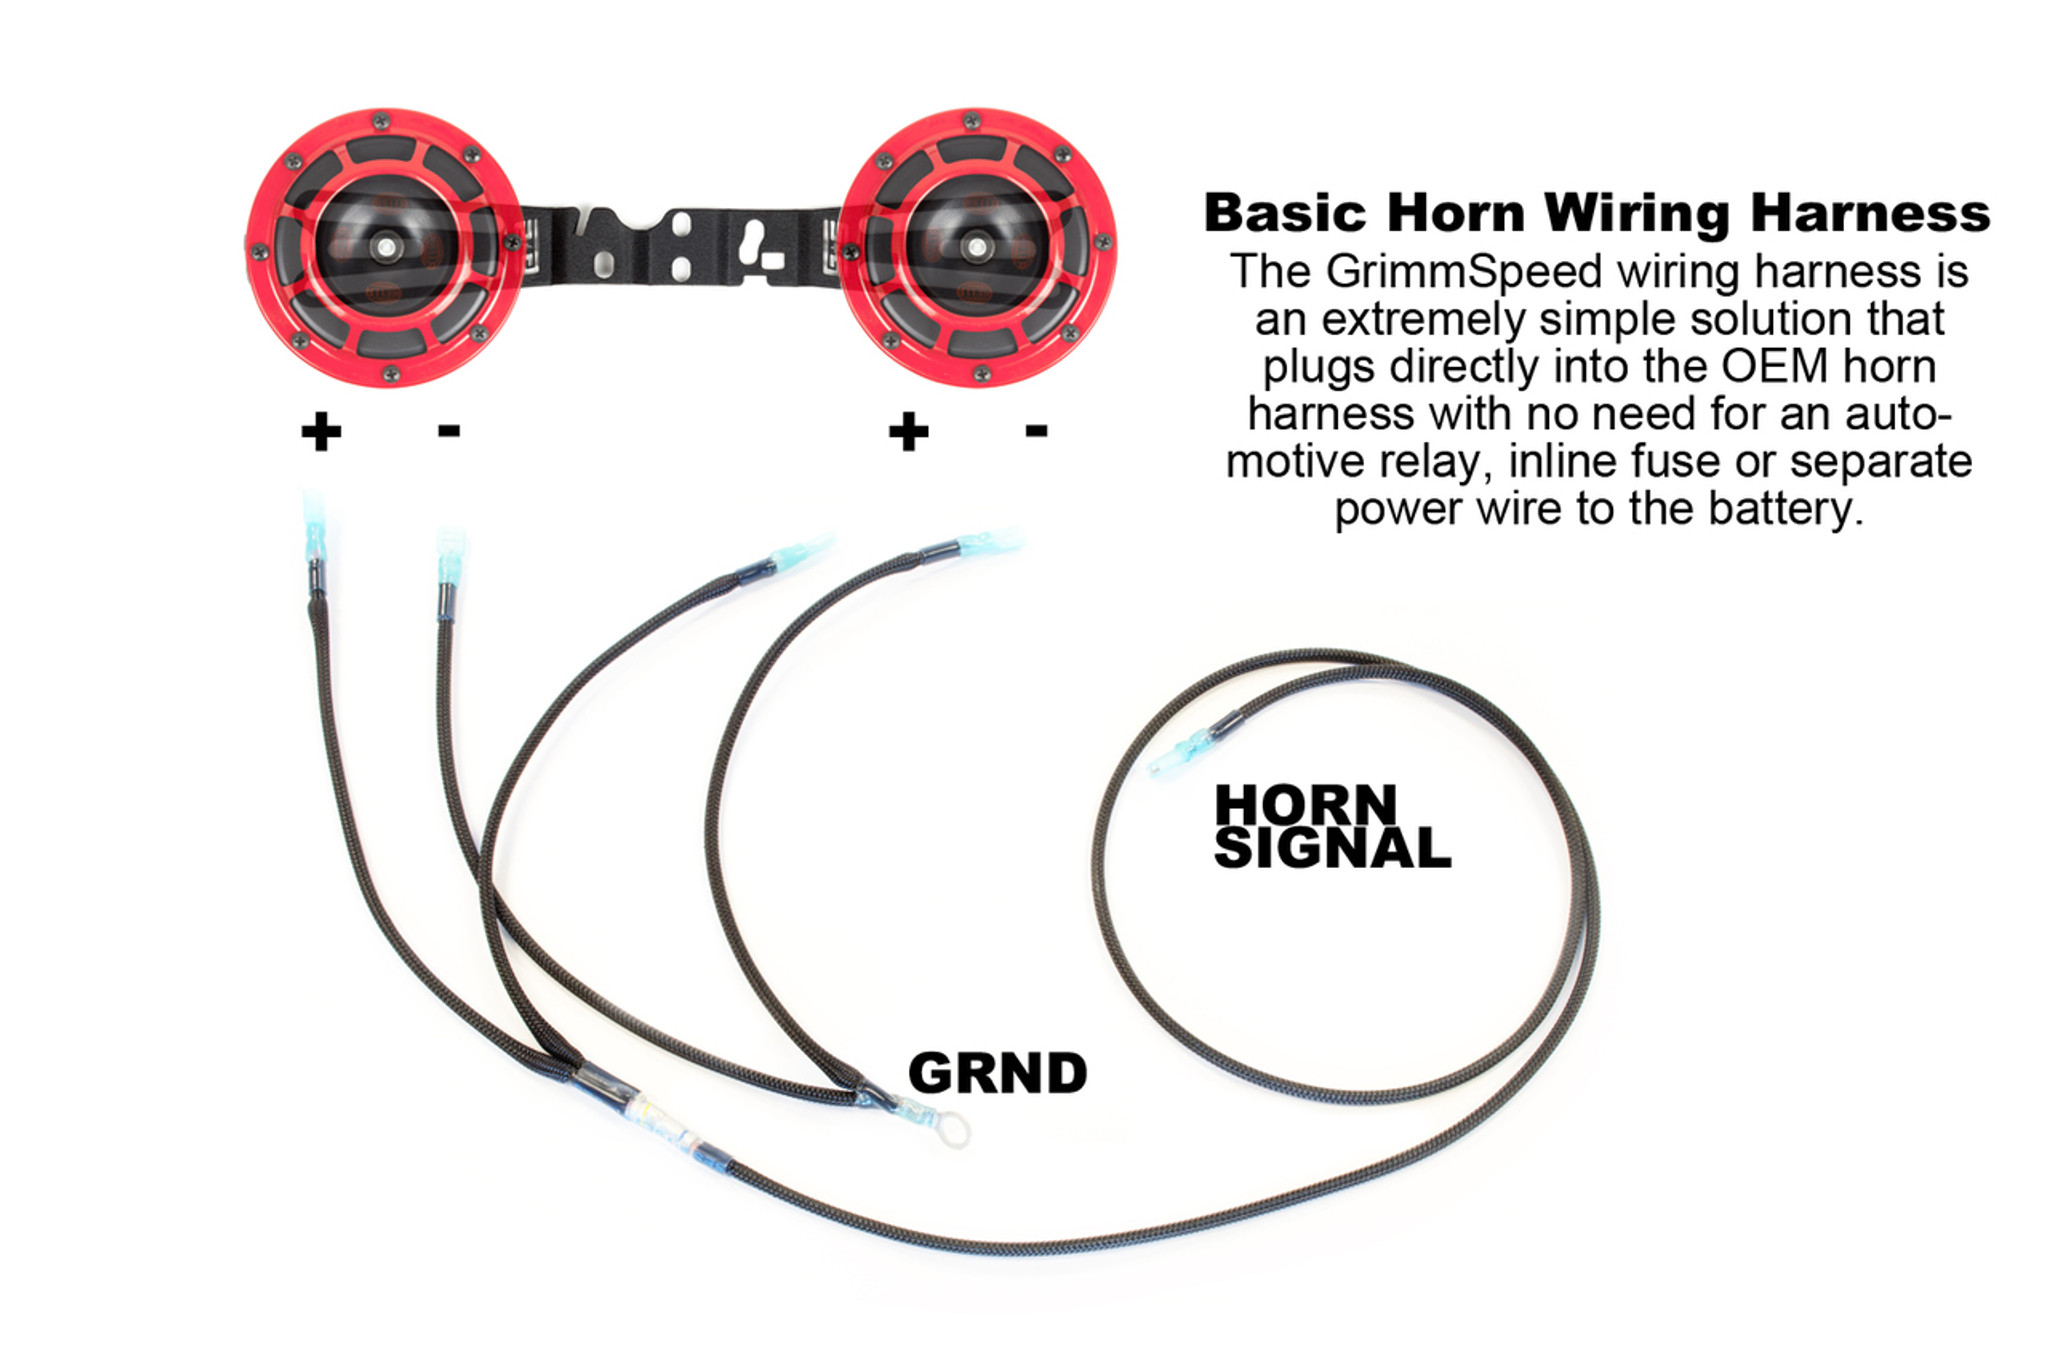 brotie_subaru_GD_GR_VA_9_1600__82146.1432237968?c\=2 horn wiring harness wiring pigtails for automotive \u2022 wiring horn wiring harness india at cos-gaming.co